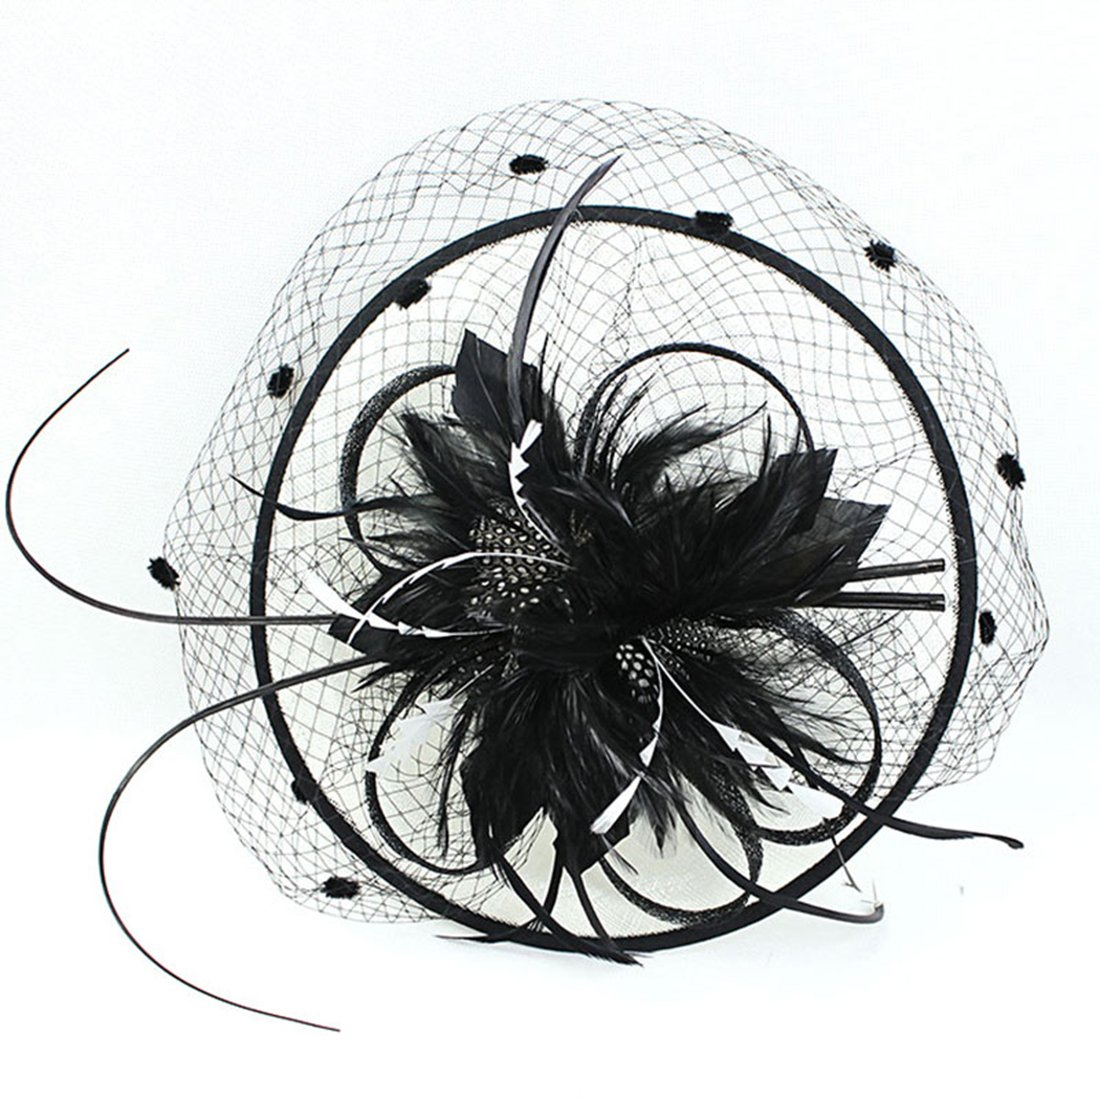 Z&X Fascinator with Headband Derby Party Feather Floral Mesh Pillbox Hat Black by Z&X (Image #5)